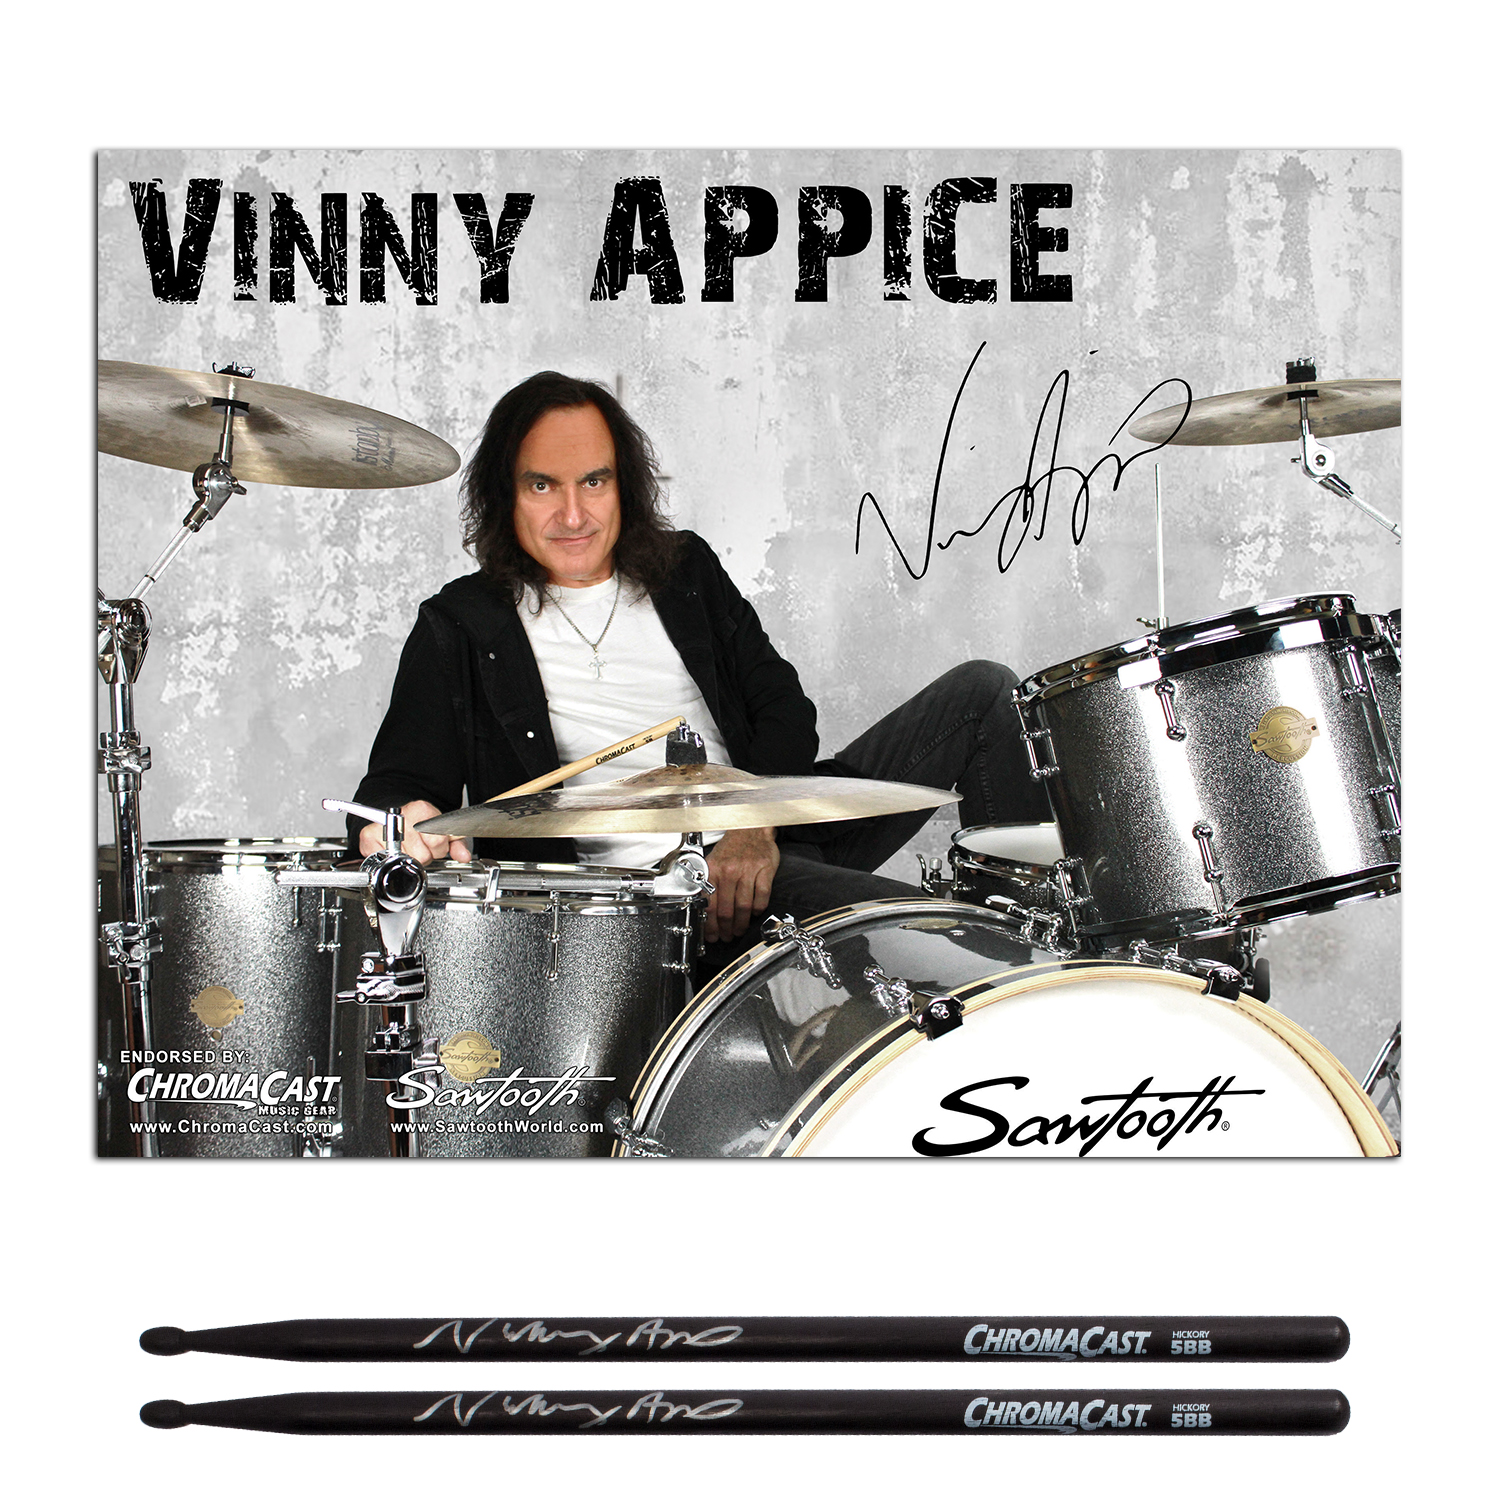 Vinny Appice Autographed Poster Pack & Signature Black 5B USA Hickory Drumstick Pack